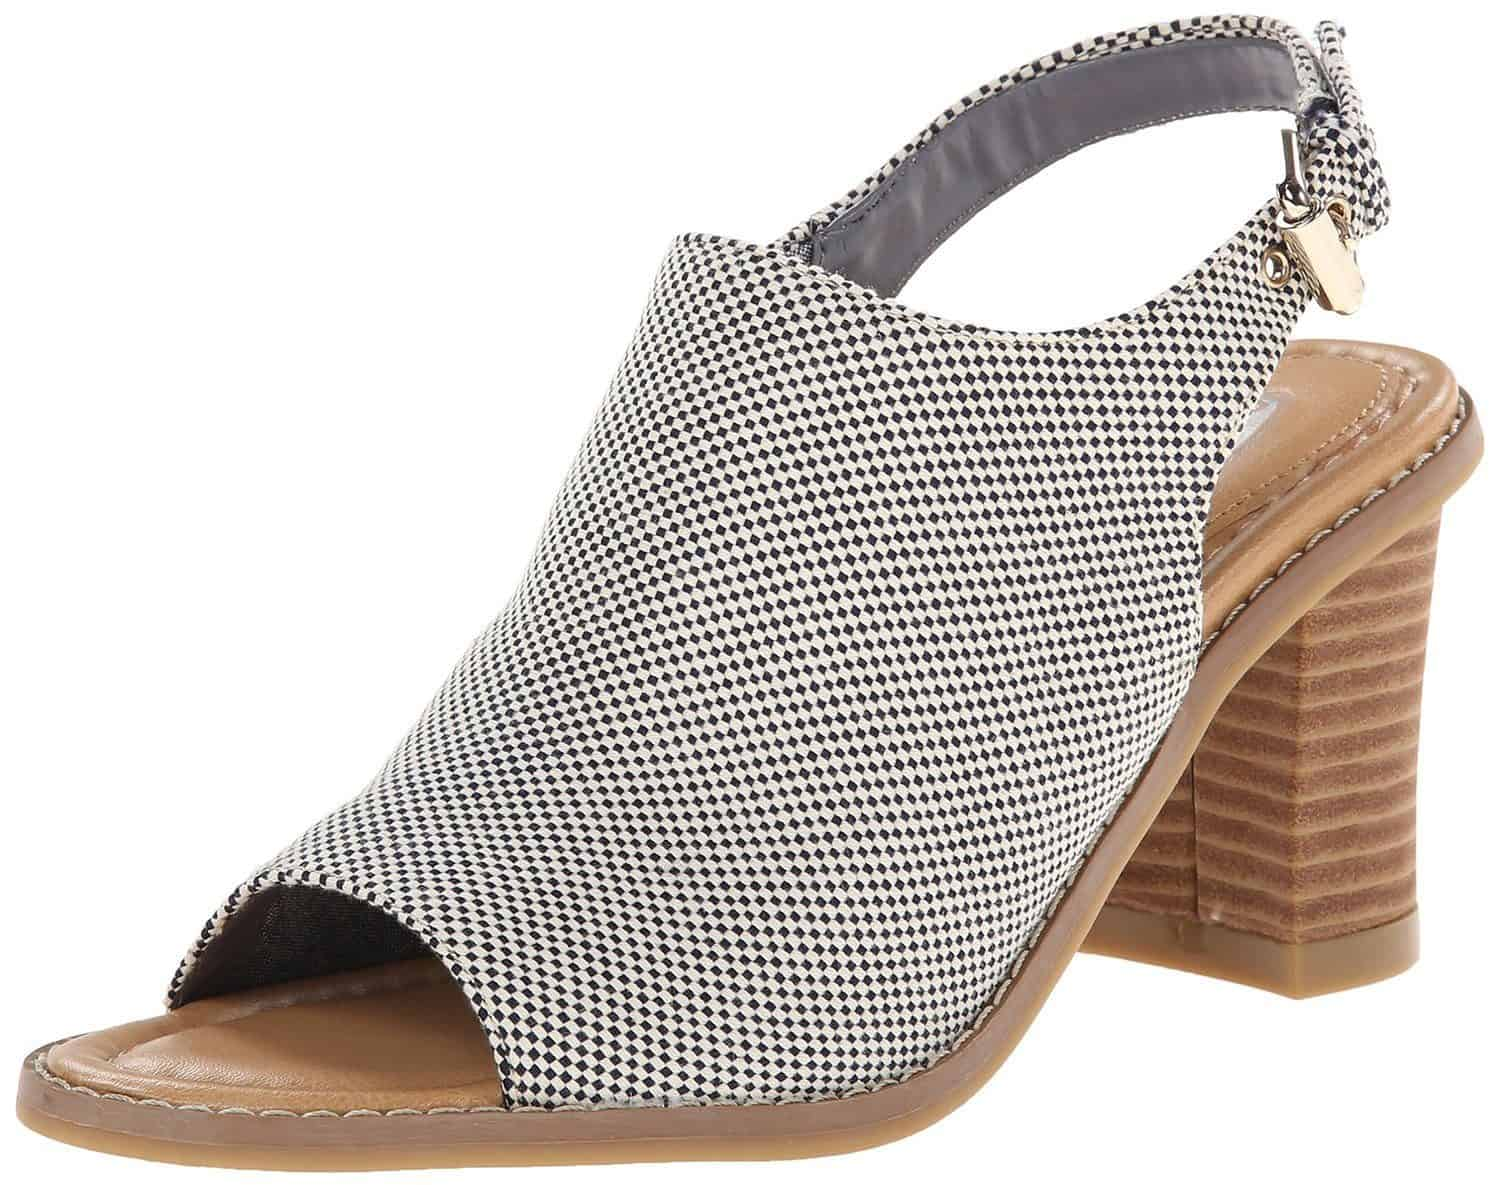 Dr. Scholls Women's Paige Dress Sandal